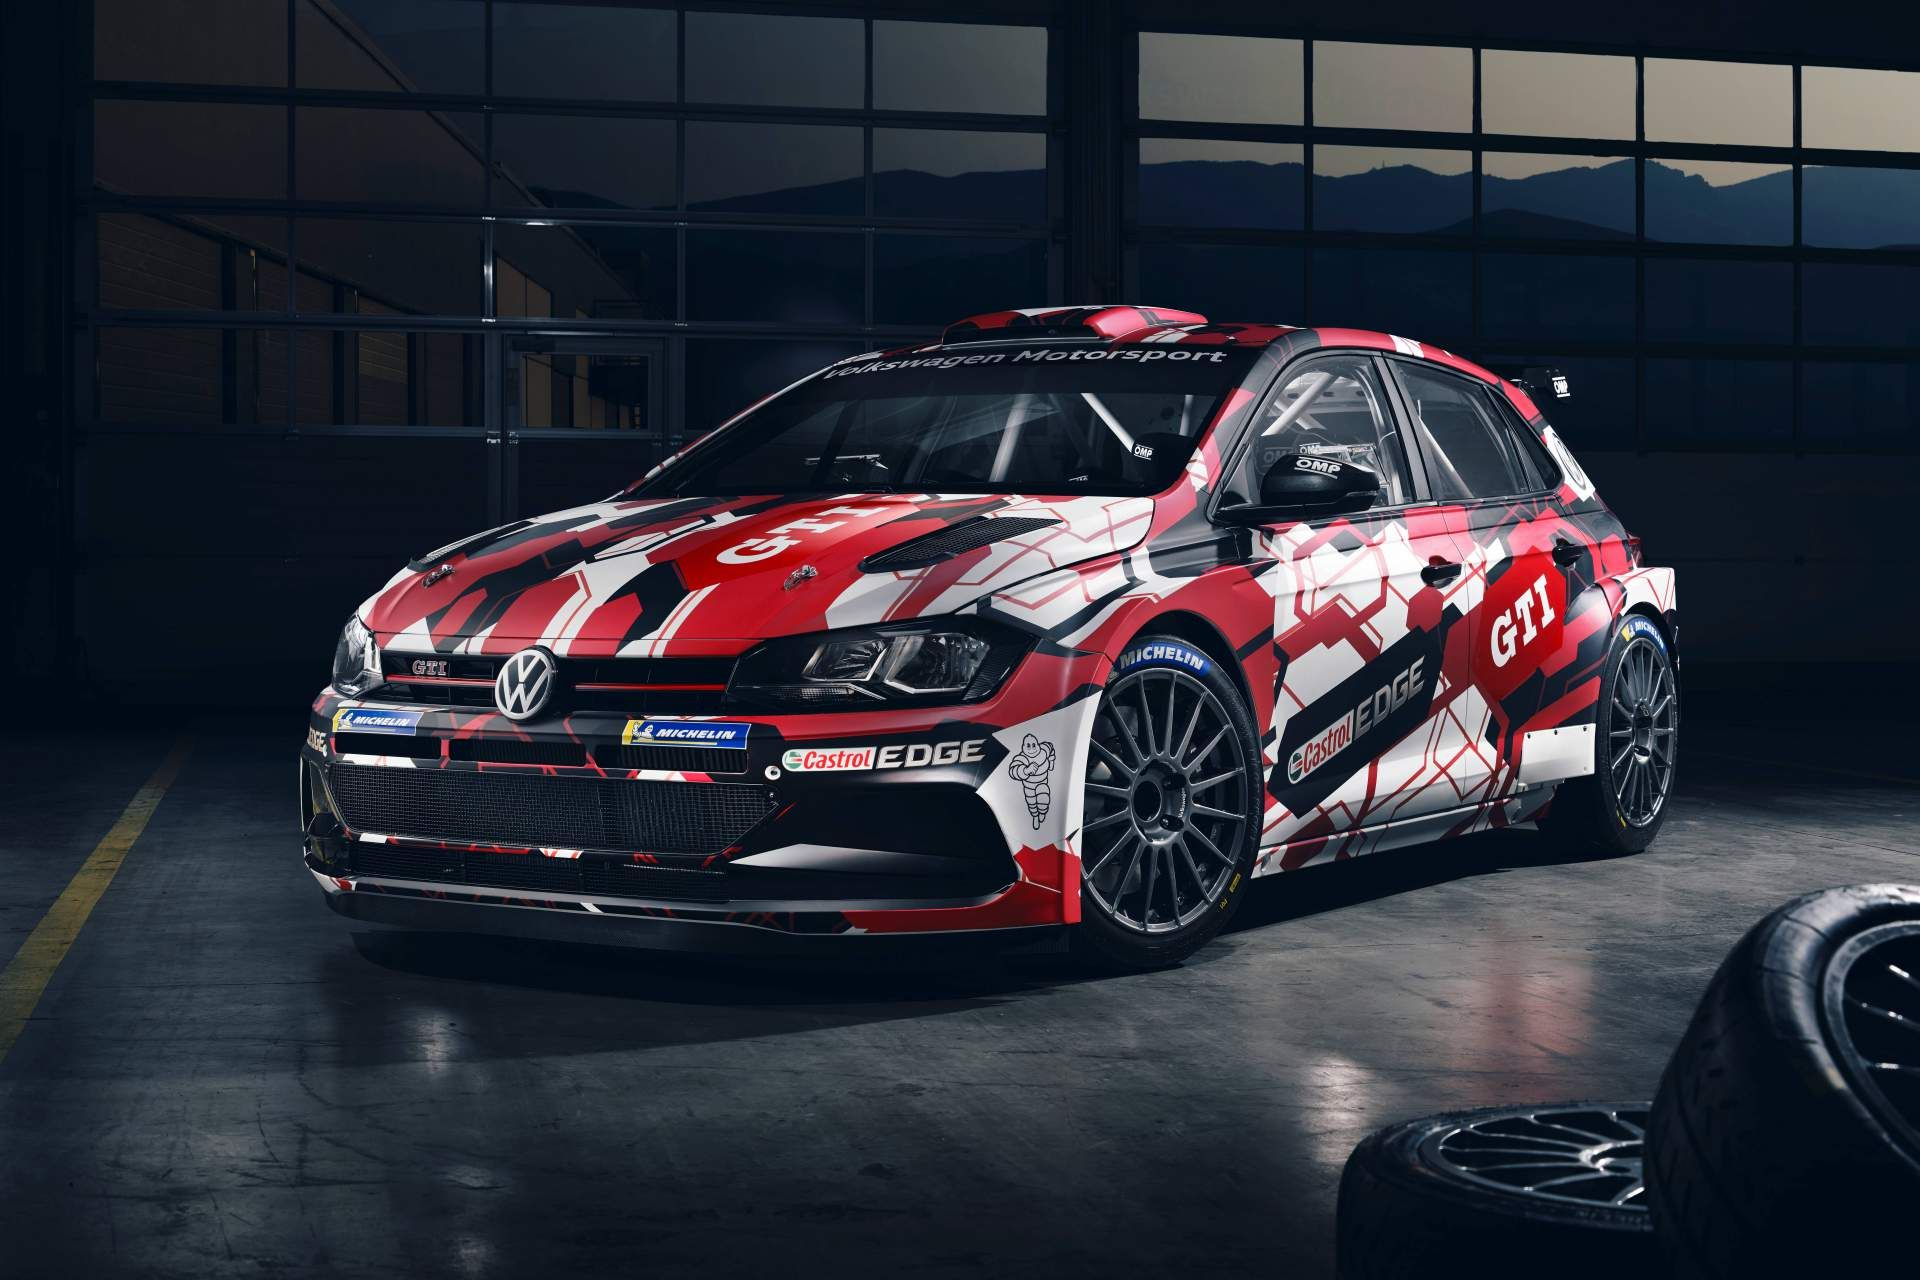 Vw Polo Gti R5 Looks Fast Standing Still Thanks To New Livery Volkswagen Polo Vw Polo Volkswagen